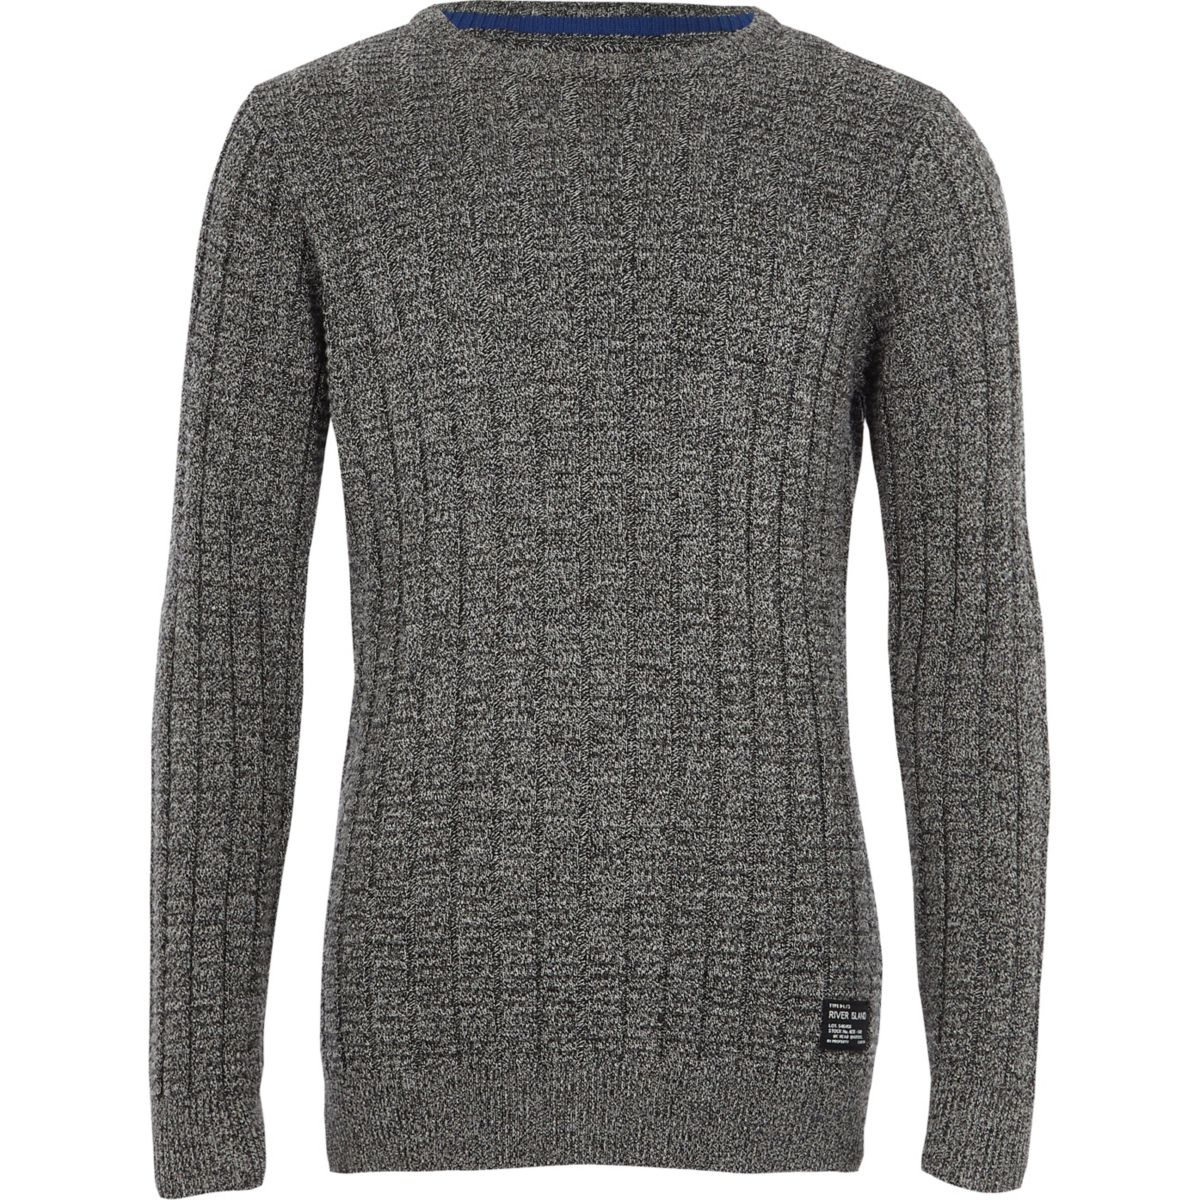 Boys grey textured knit sweater